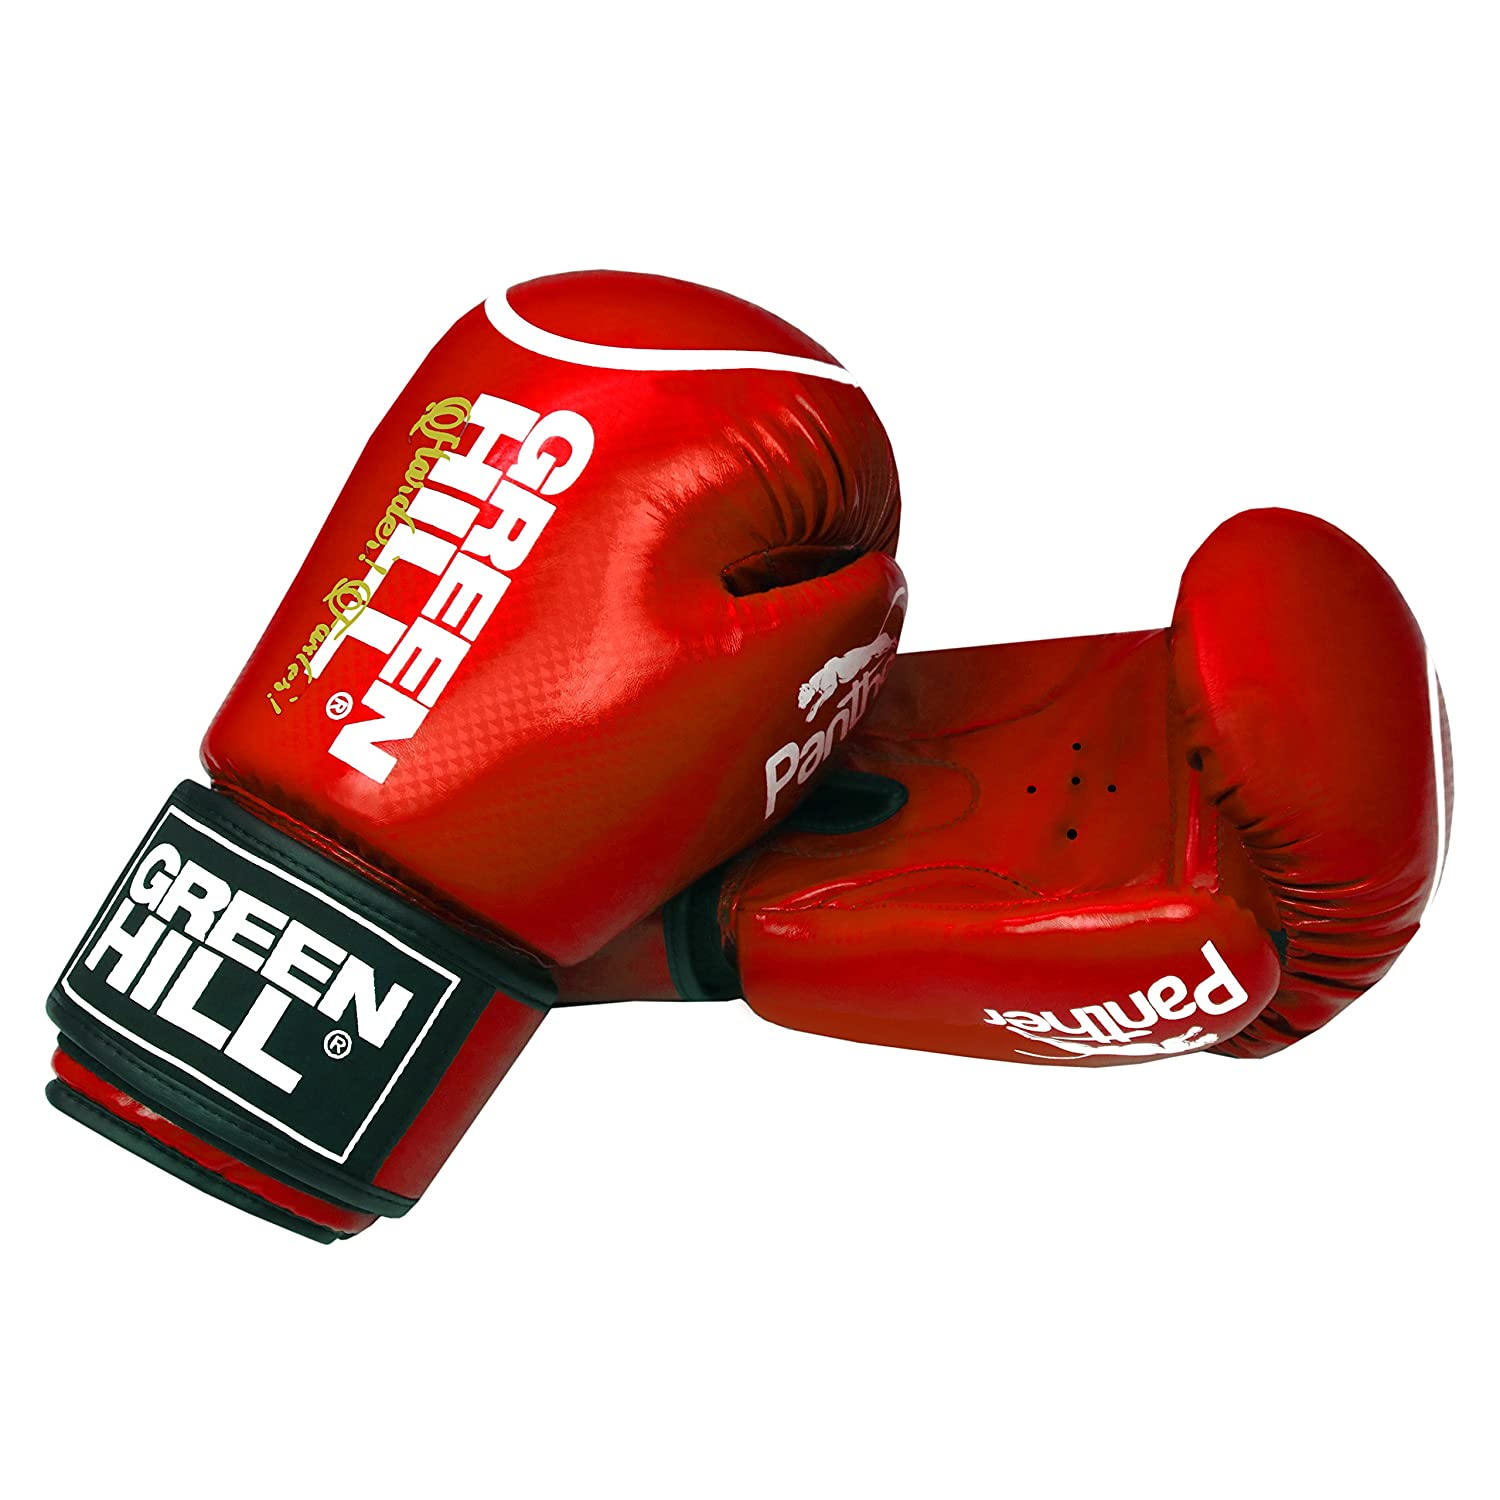 Greenhill Green Hill Panther Boxing Gloves Muay Thai Training Sparring Punching Bag Kickboxing UFC MMA Cage Fighting